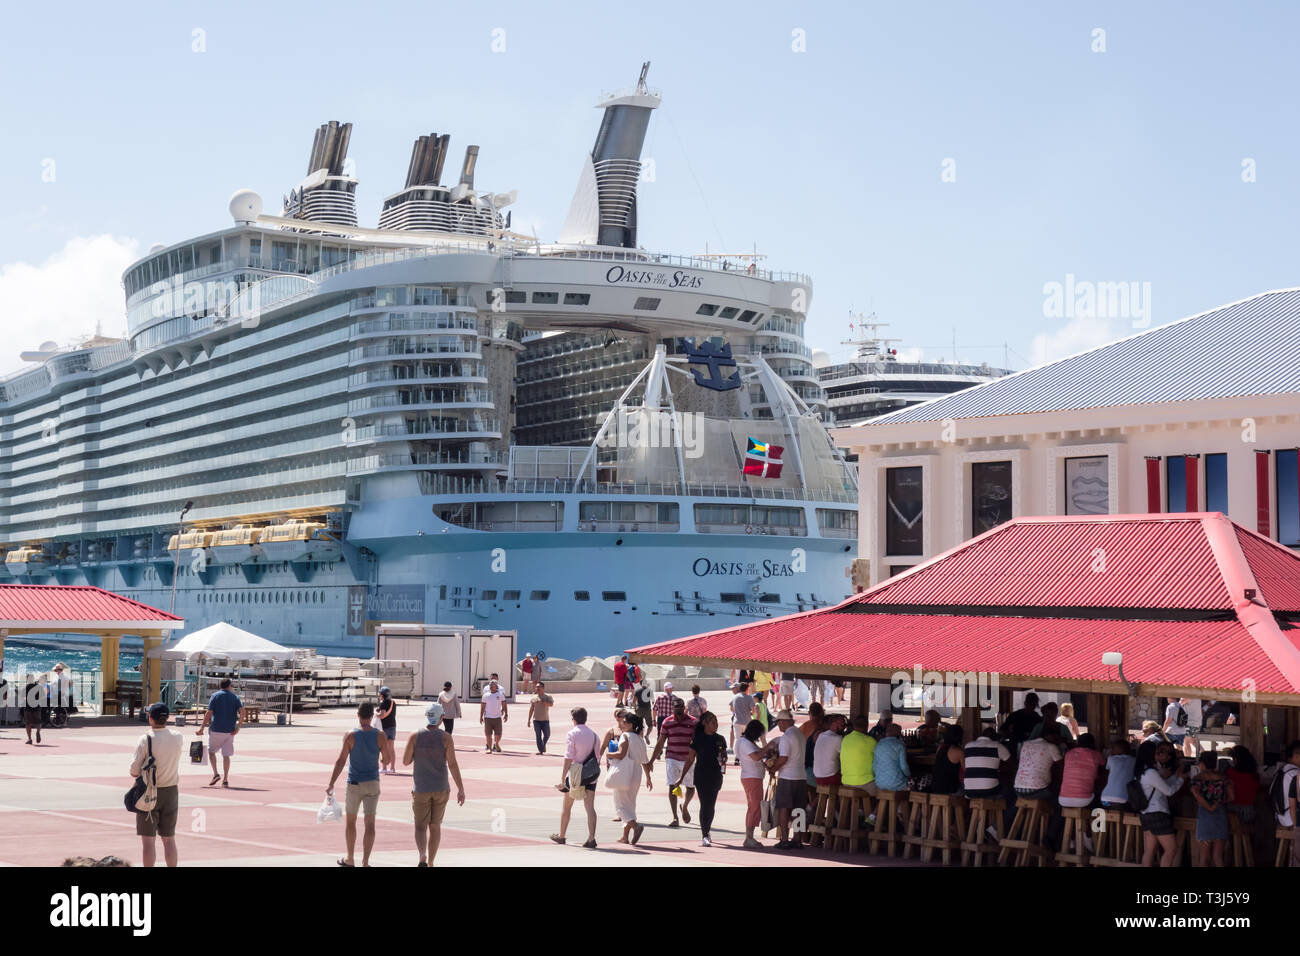 Oasis of the Seas owned by Royal Caribbean International is being docked at  Sint Maarten Cruise Port Terminal in Bahamas. - Stock Image